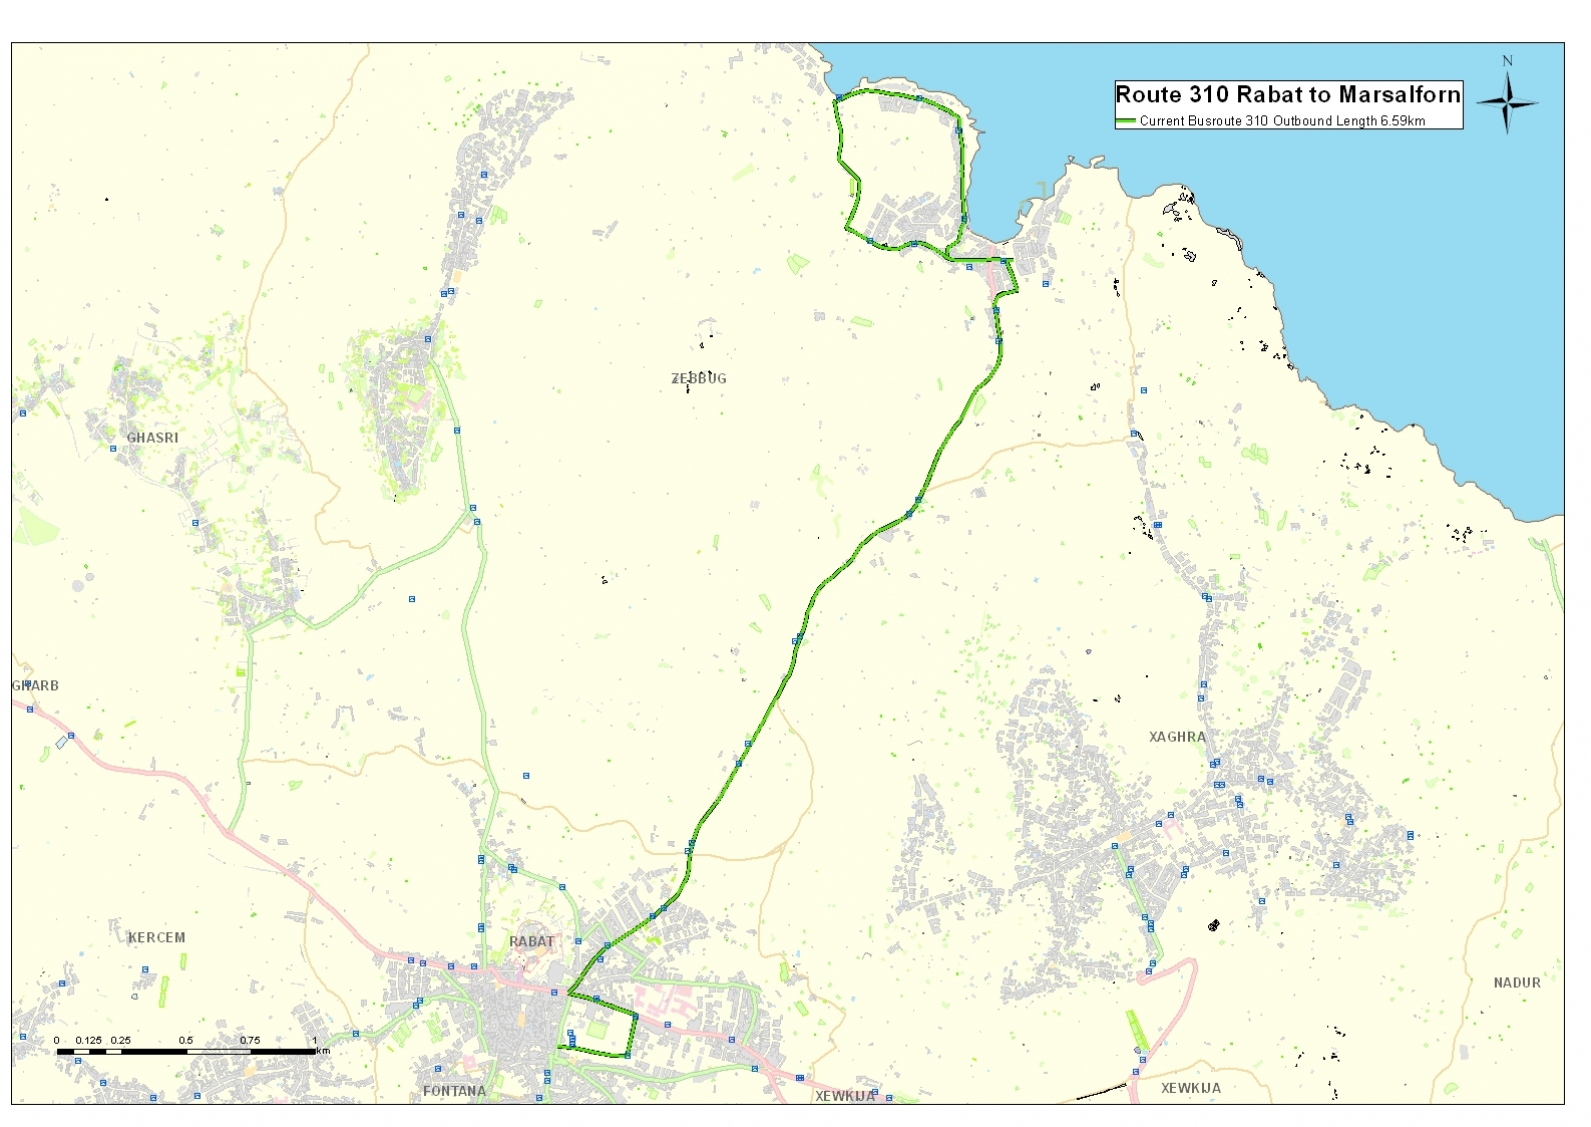 Land-current-network-routes-and-schedules-Gozo-20